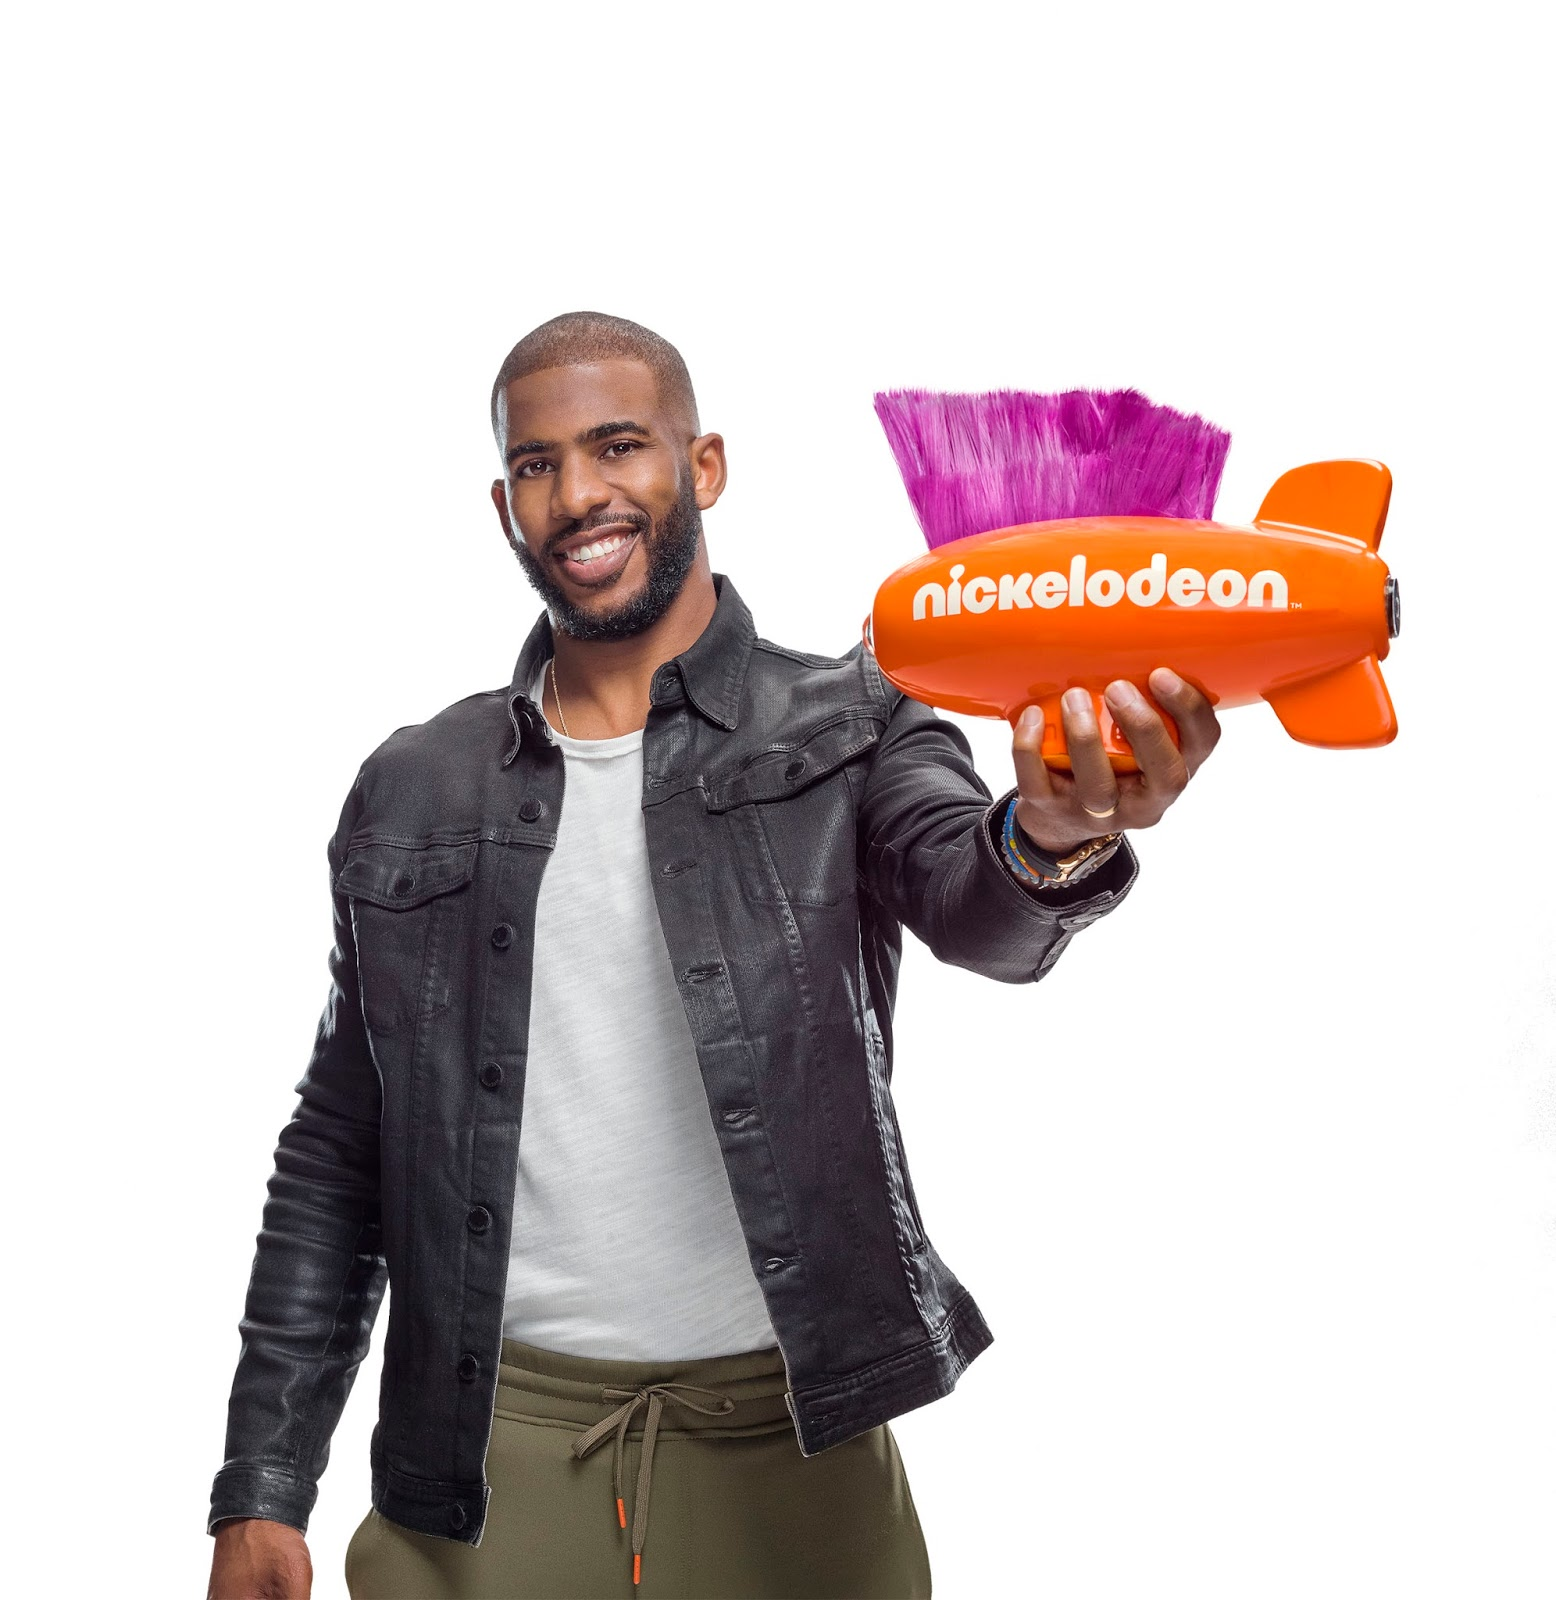 74d3dafaa Hosted by Chris Paul, Houston Rockets' point guard and former NBA All-Star  MVP, Kids' Choice Sports 2018 is the only show where kids celebrate their  ...